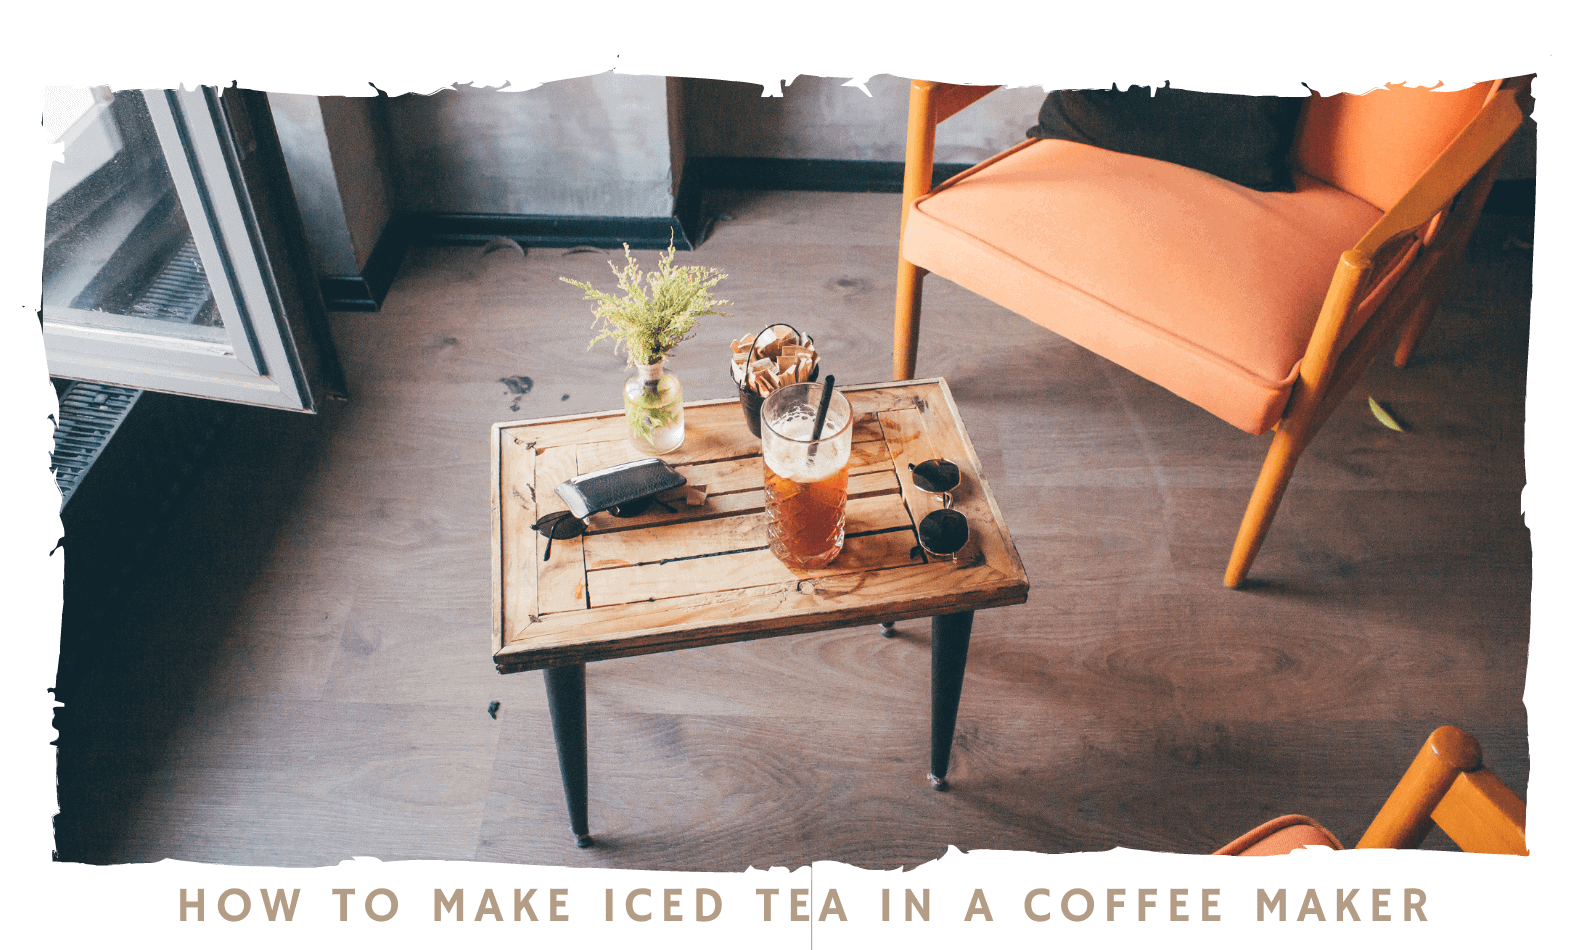 How to Make Iced Tea in a Coffee Maker